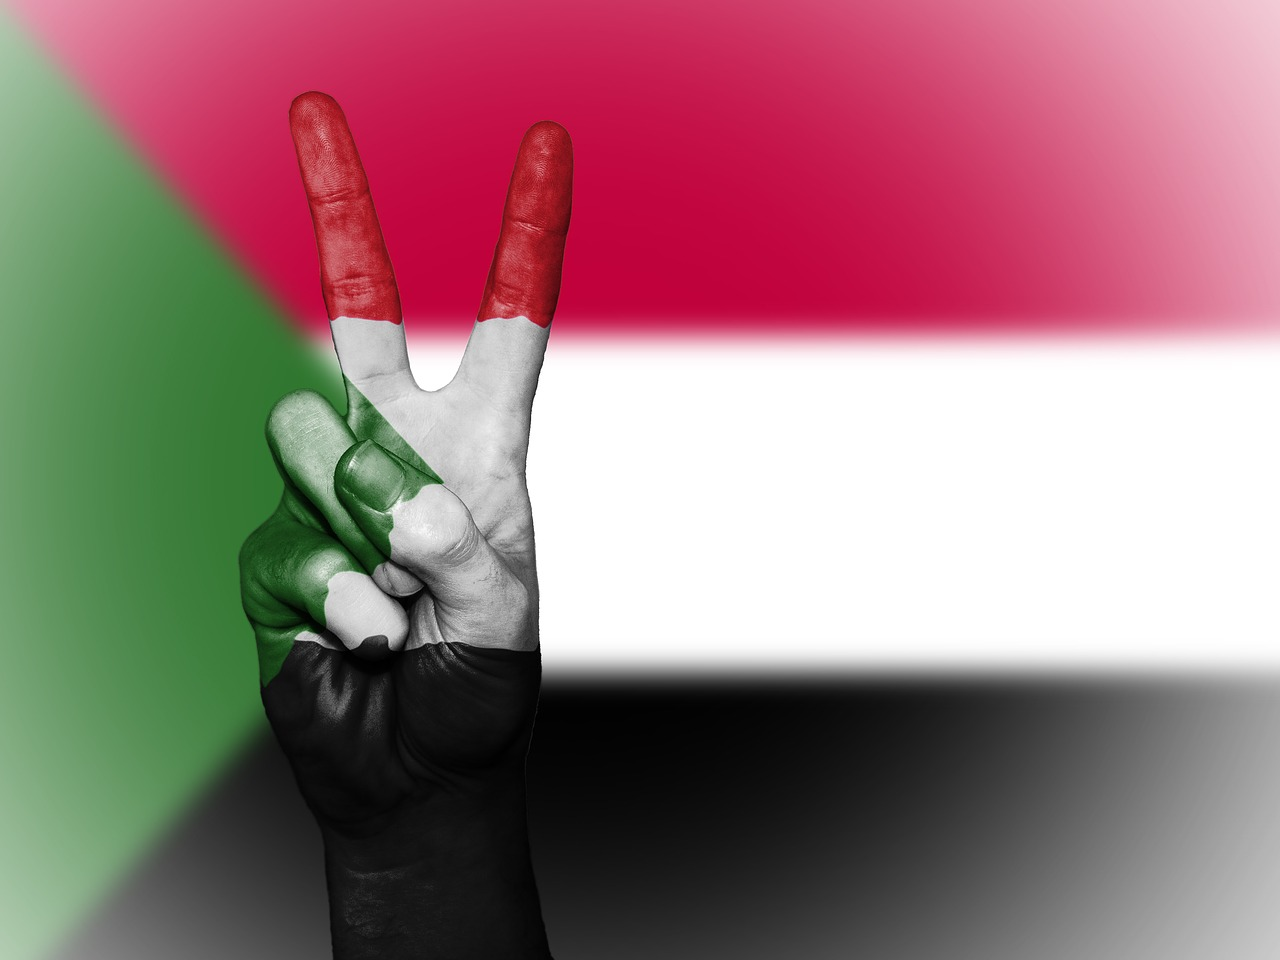 Sudan signs agreement with US to normalize relations